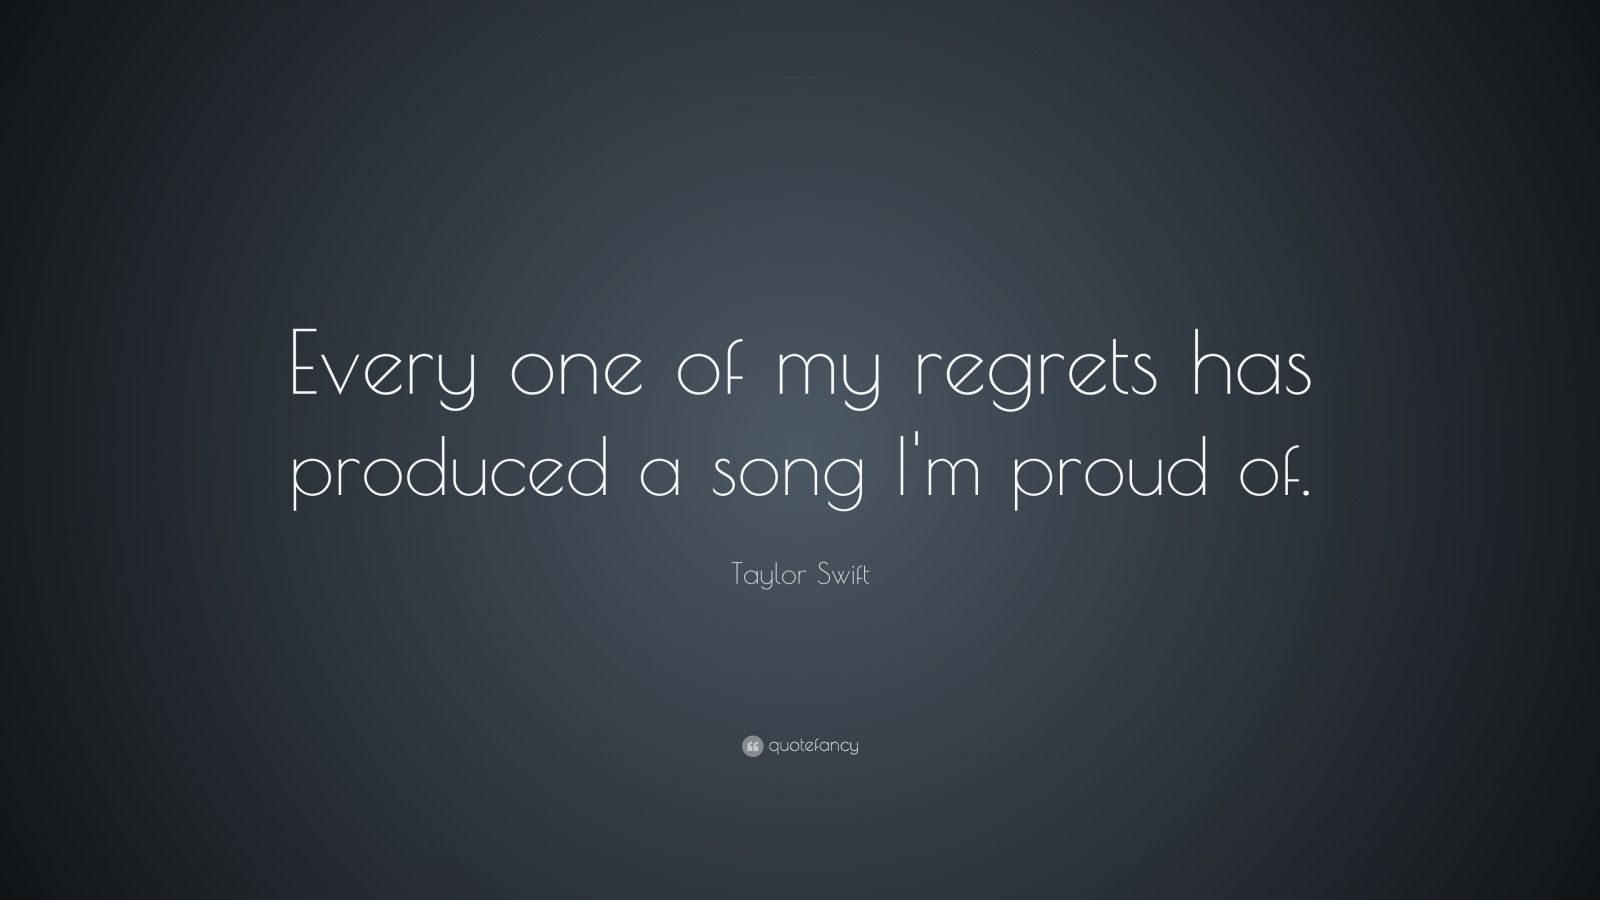 Khalil Gibran Quote Desktop Wallpaper Taylor Swift Quote Every One Of My Regrets Has Produced